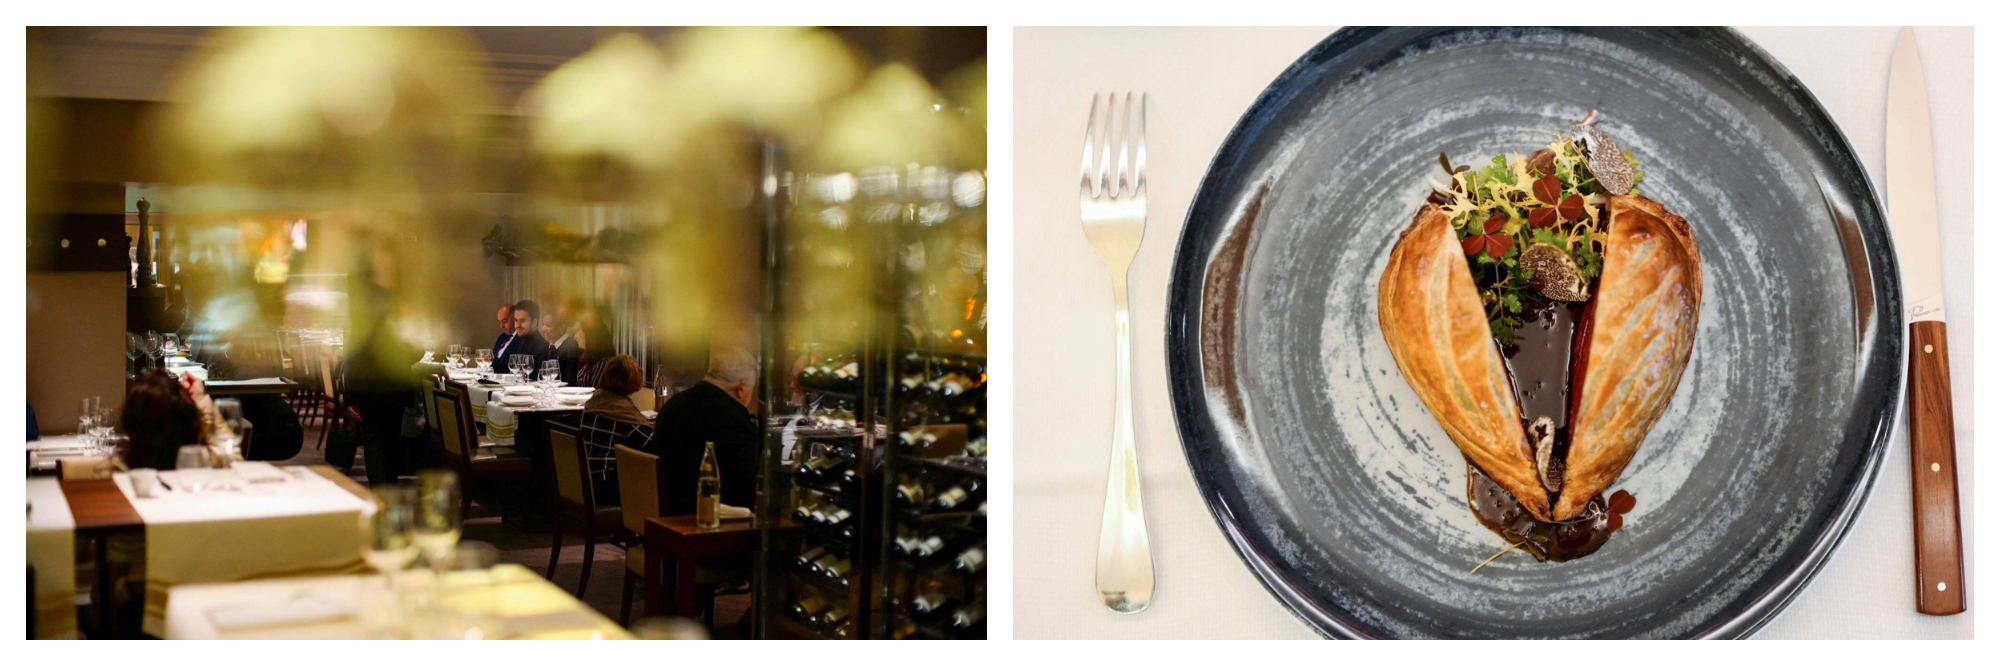 The exterior of the restaurant Le Violon d'Ingres in Paris with people sitting at tables and wine fridges (left). A bird's eye view of a grey plate with cutlery on either side, with a wellington, salad and sauce in the middle (right).